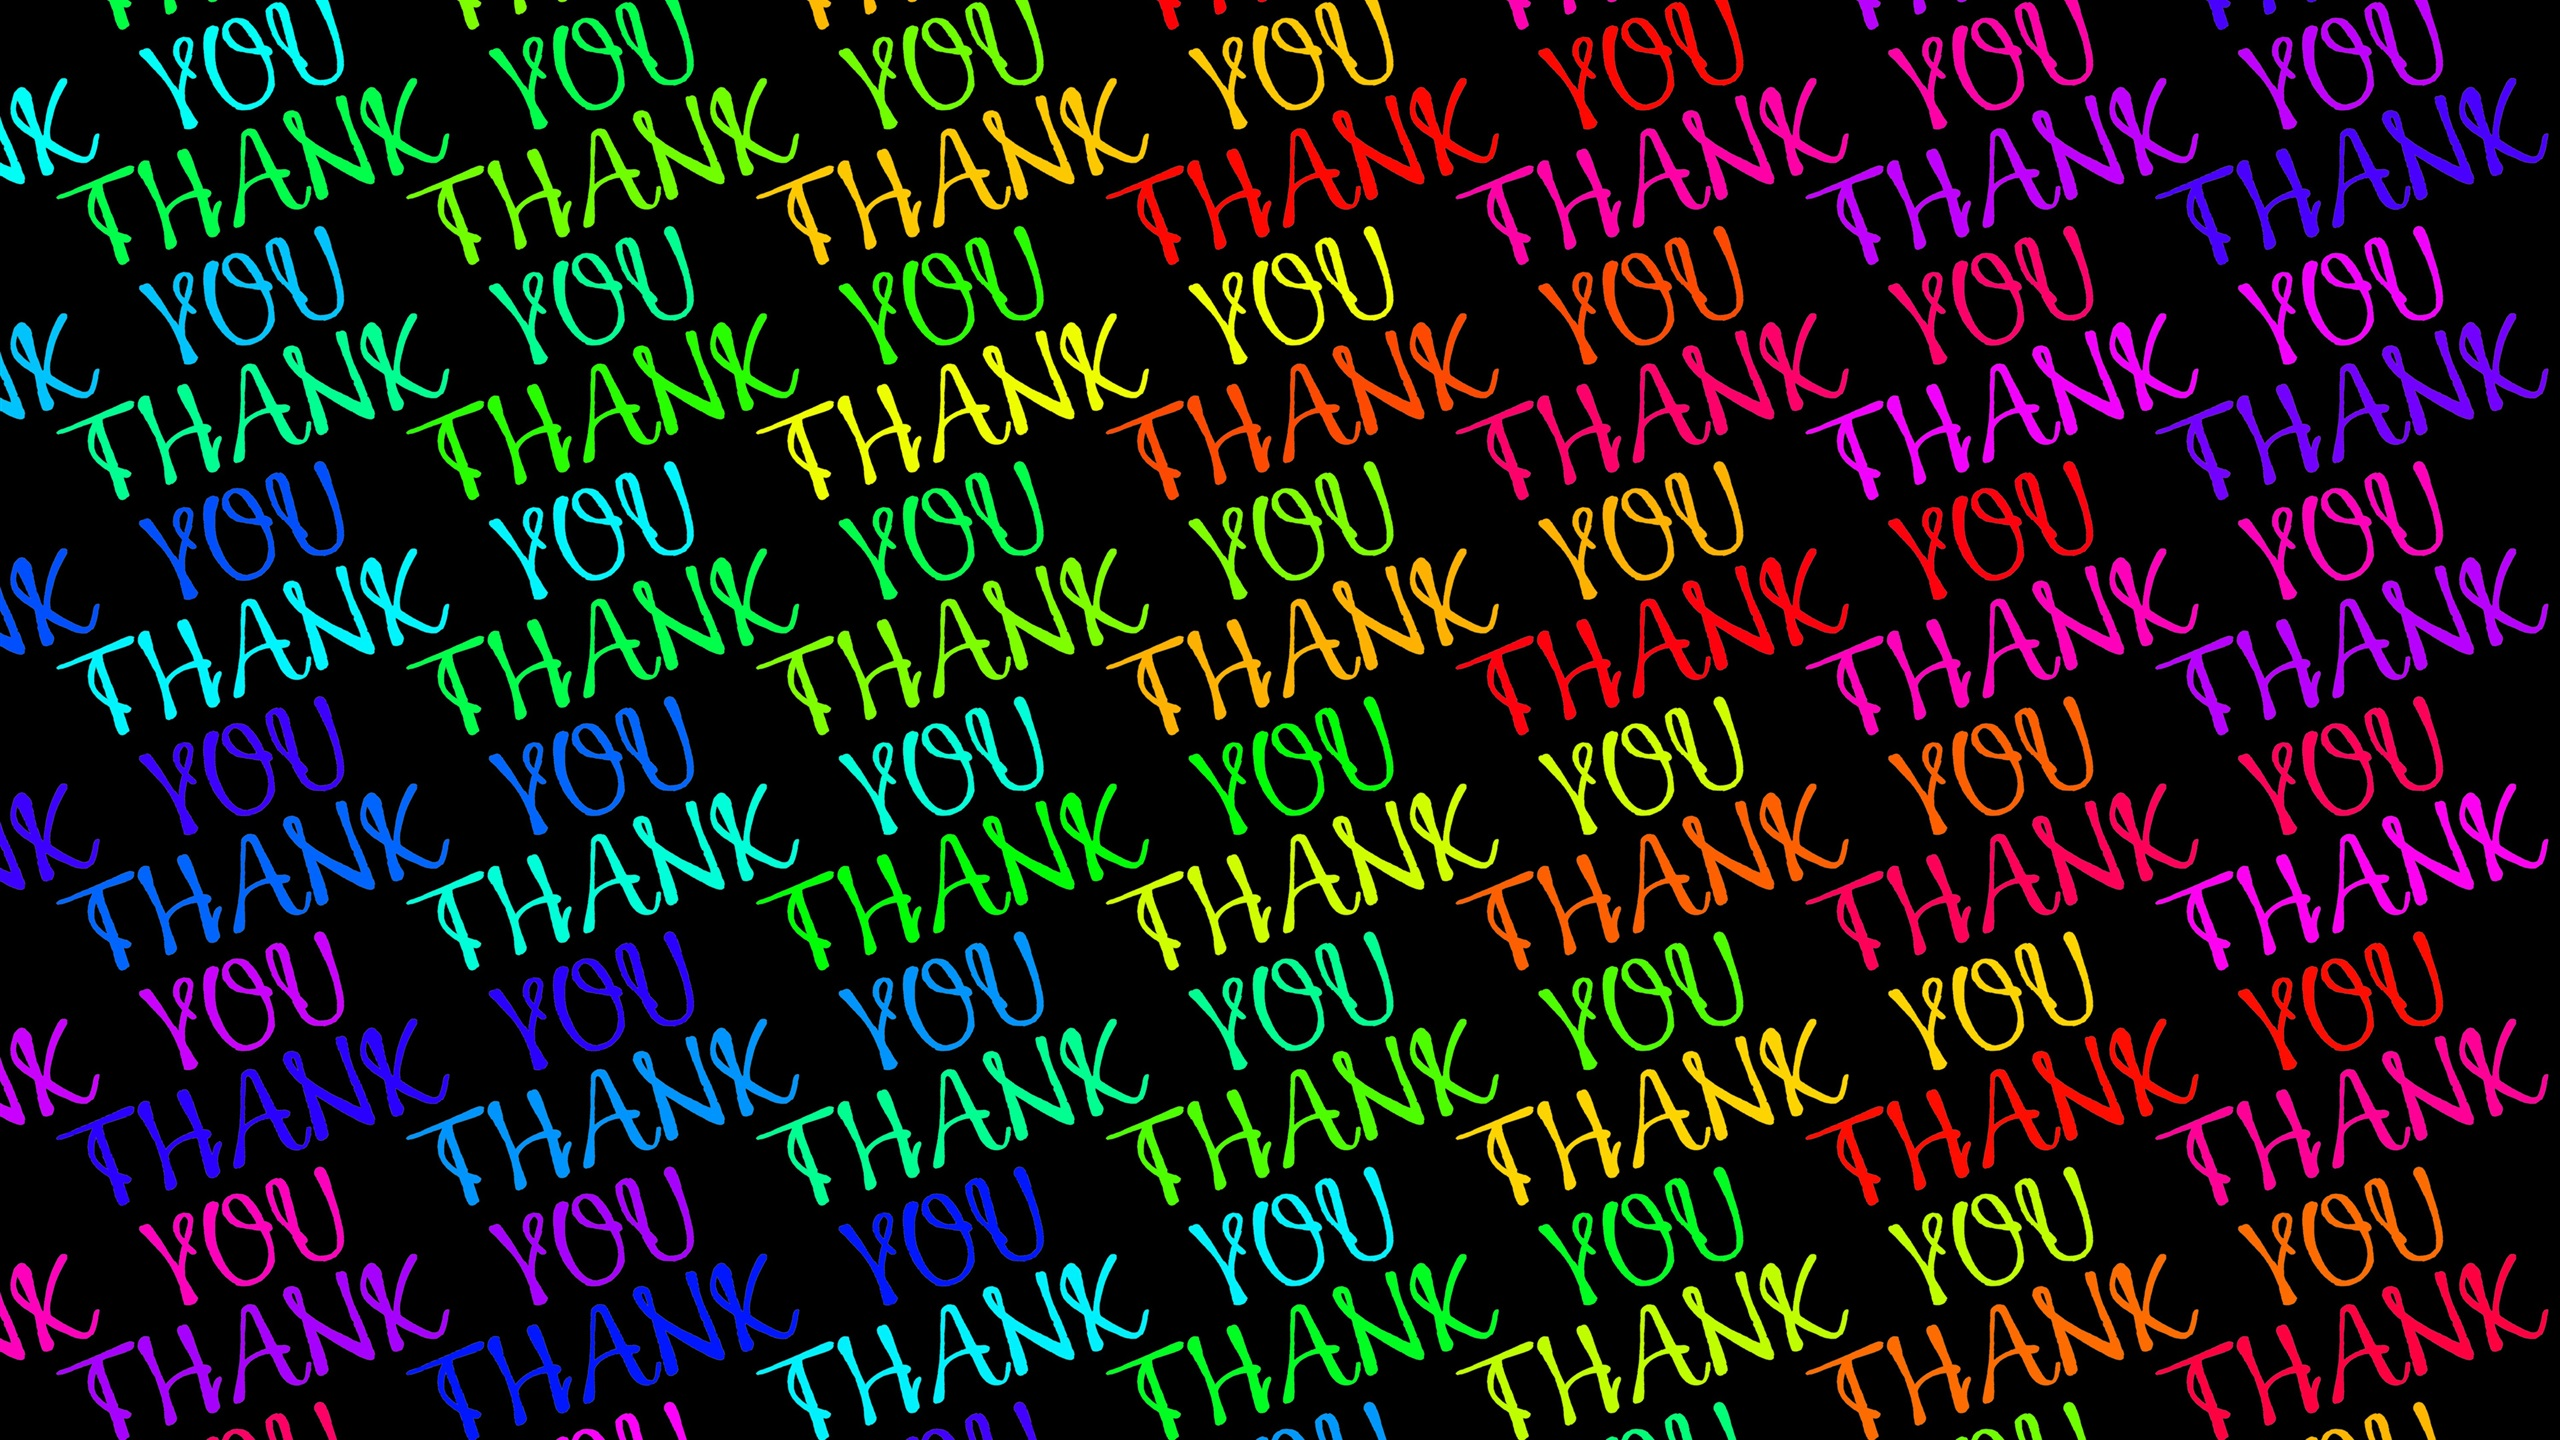 Wallpaper Colorful Thank You Text 3840x2160 Uhd 4k Picture Image